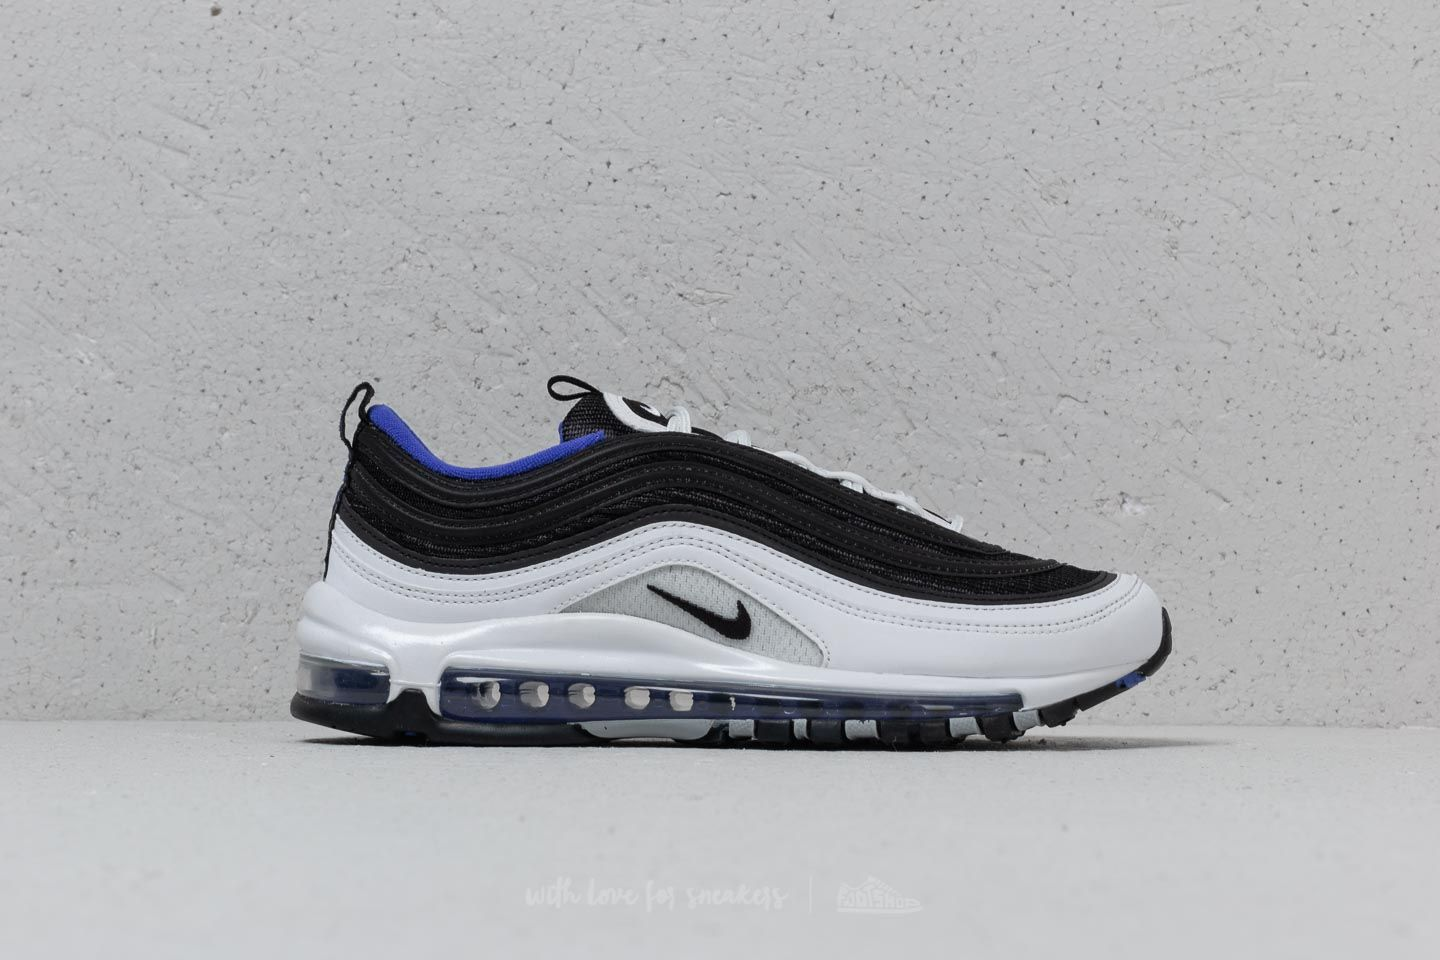 Nike Air Max 97 White Black Persian Violet | Footshop